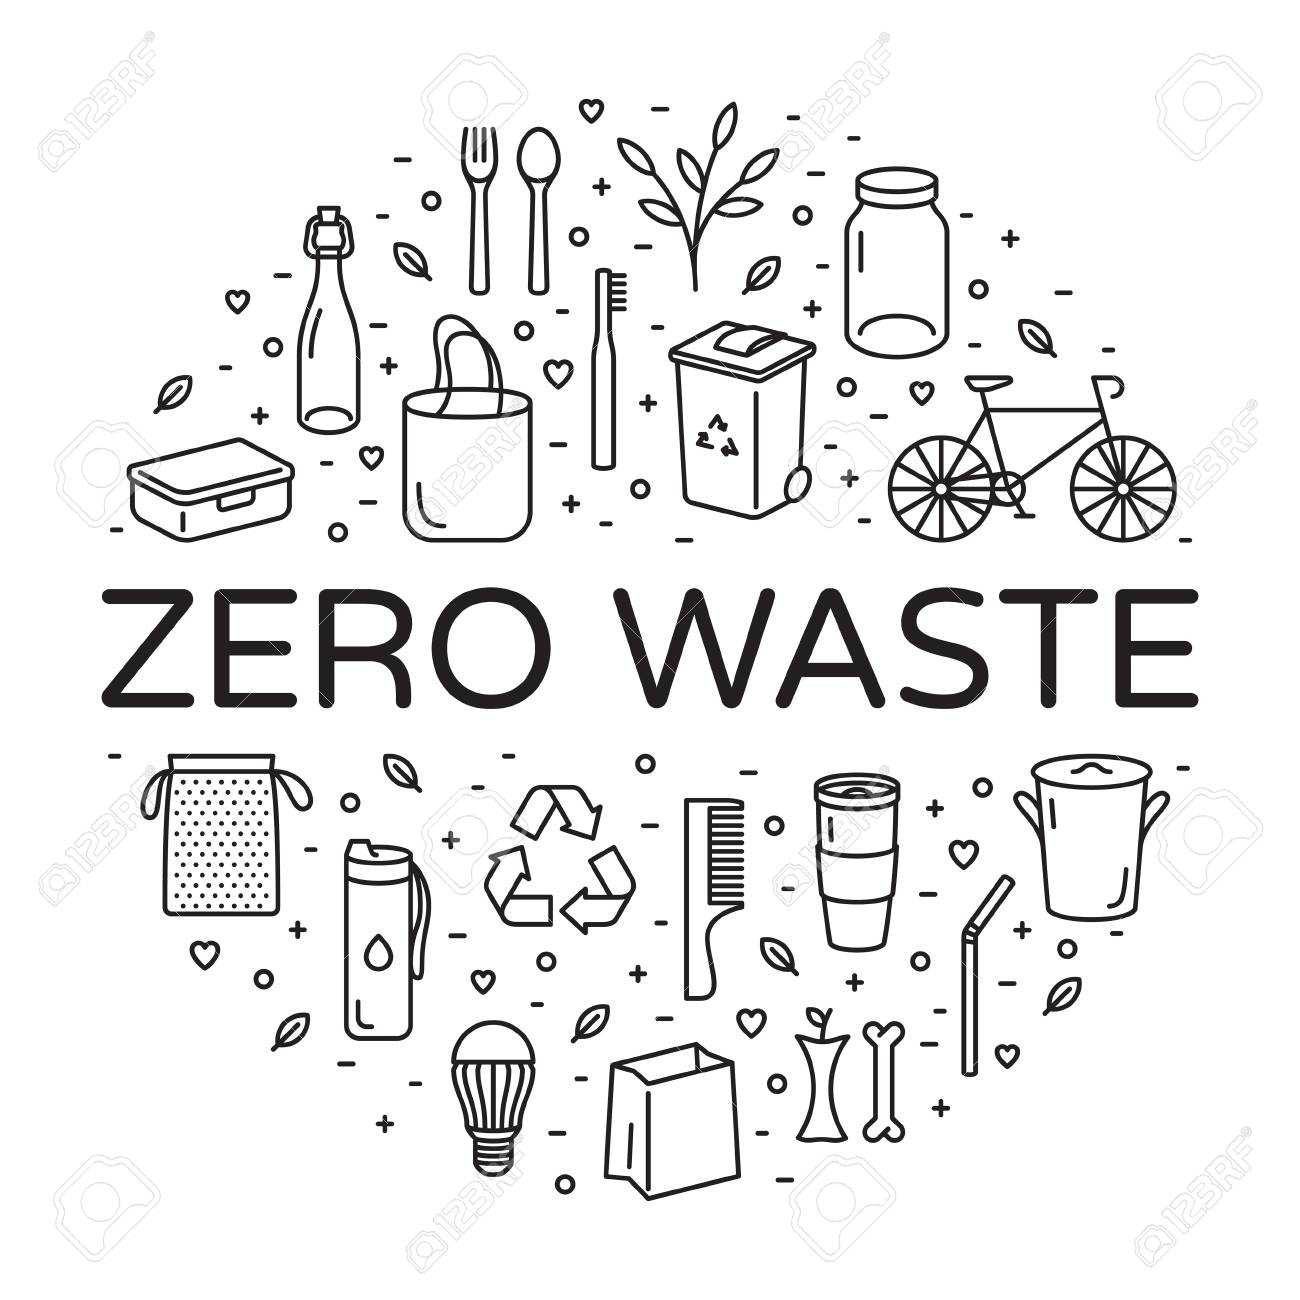 Vector Zero Waste logo design template set. Linear icon illustration of Refuse Reduce Reuse Recycle Rot. No Plastic and Go Green background in circle form. Ð•co lifestyle sign and symbol collection - 109825314